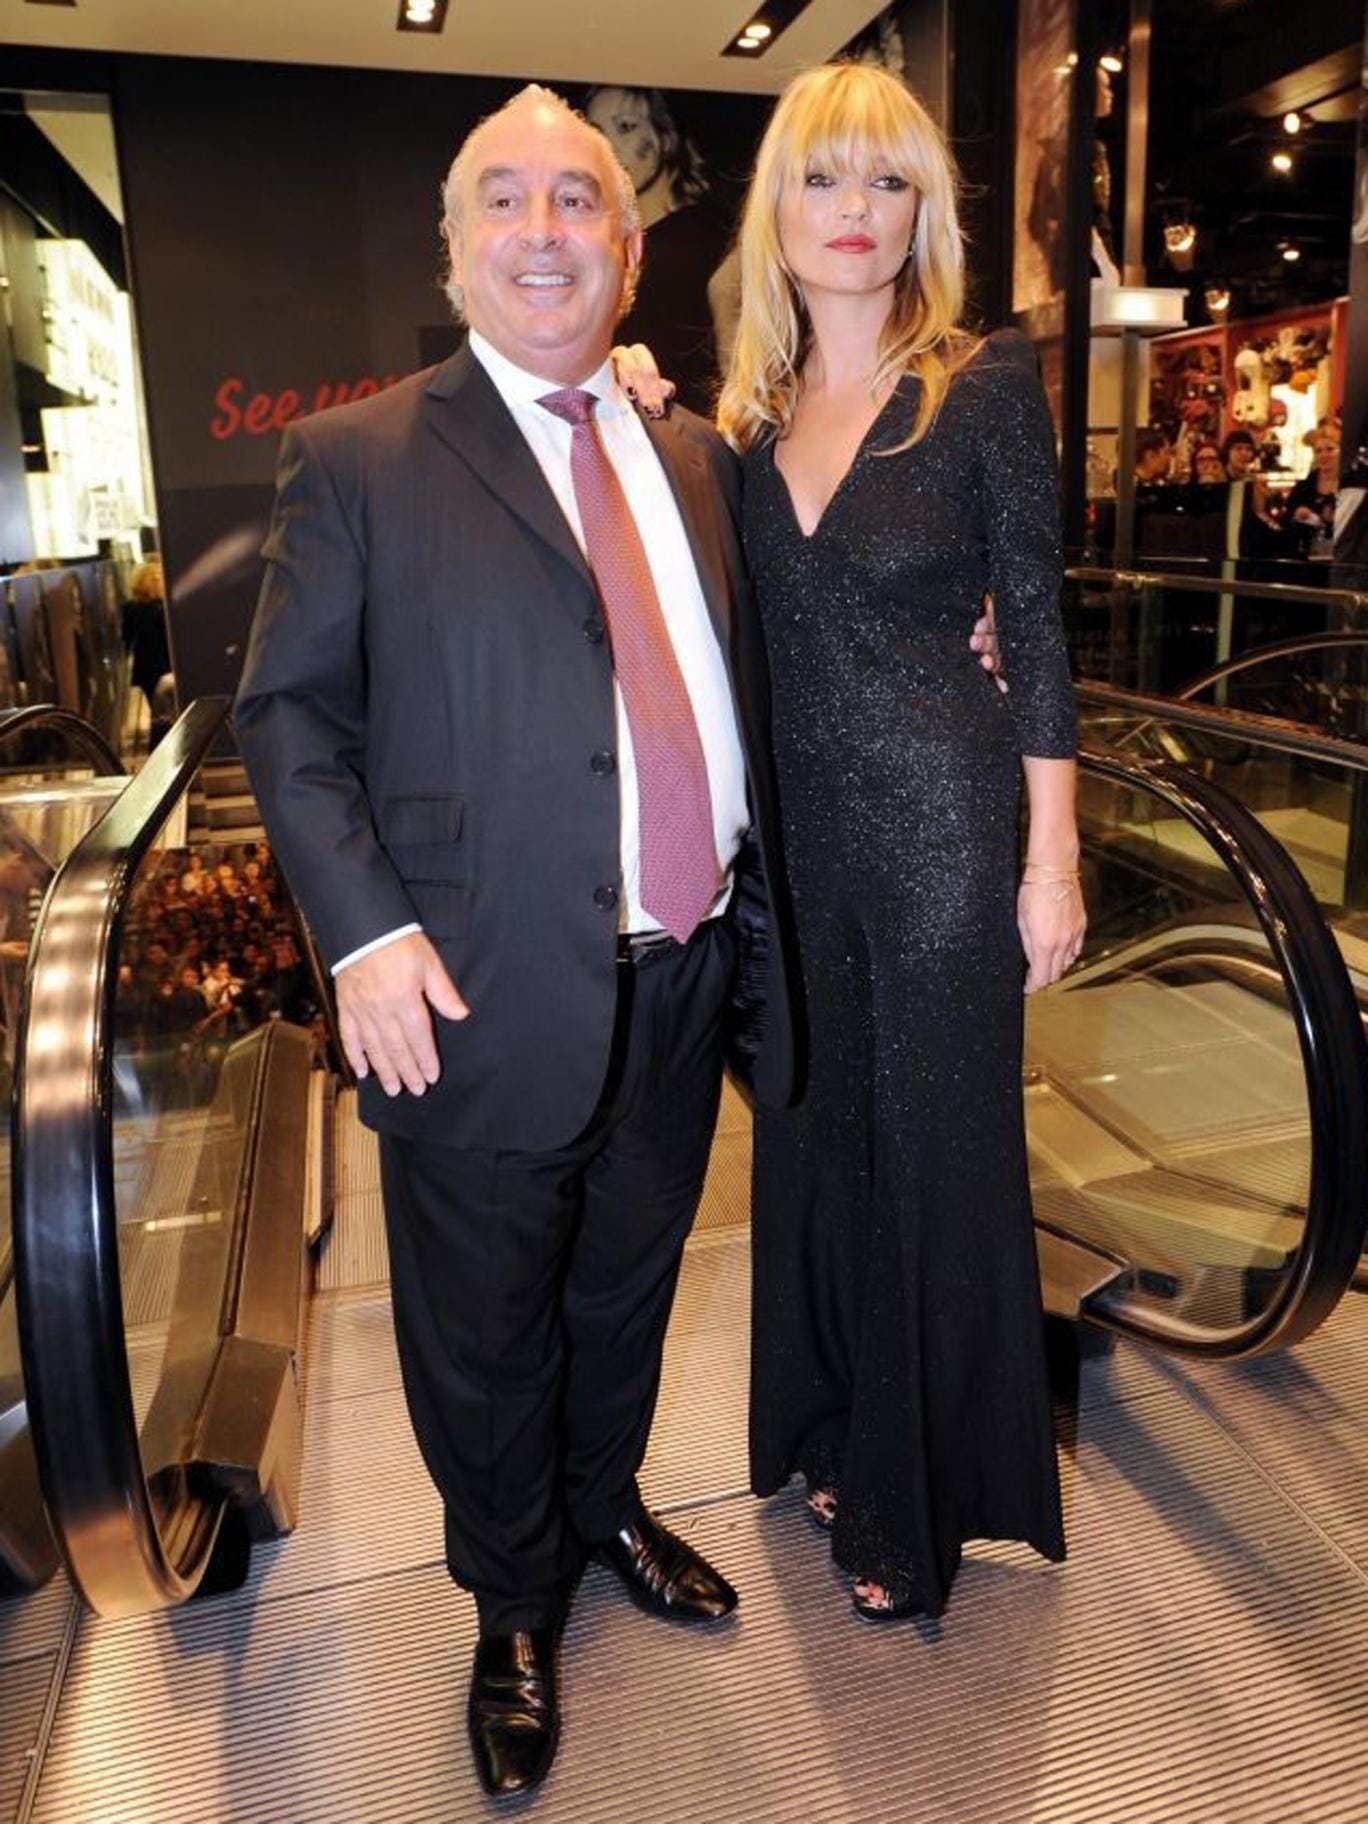 Sir Philip at Topshop's flagship Oxford Street store with model Kate Moss